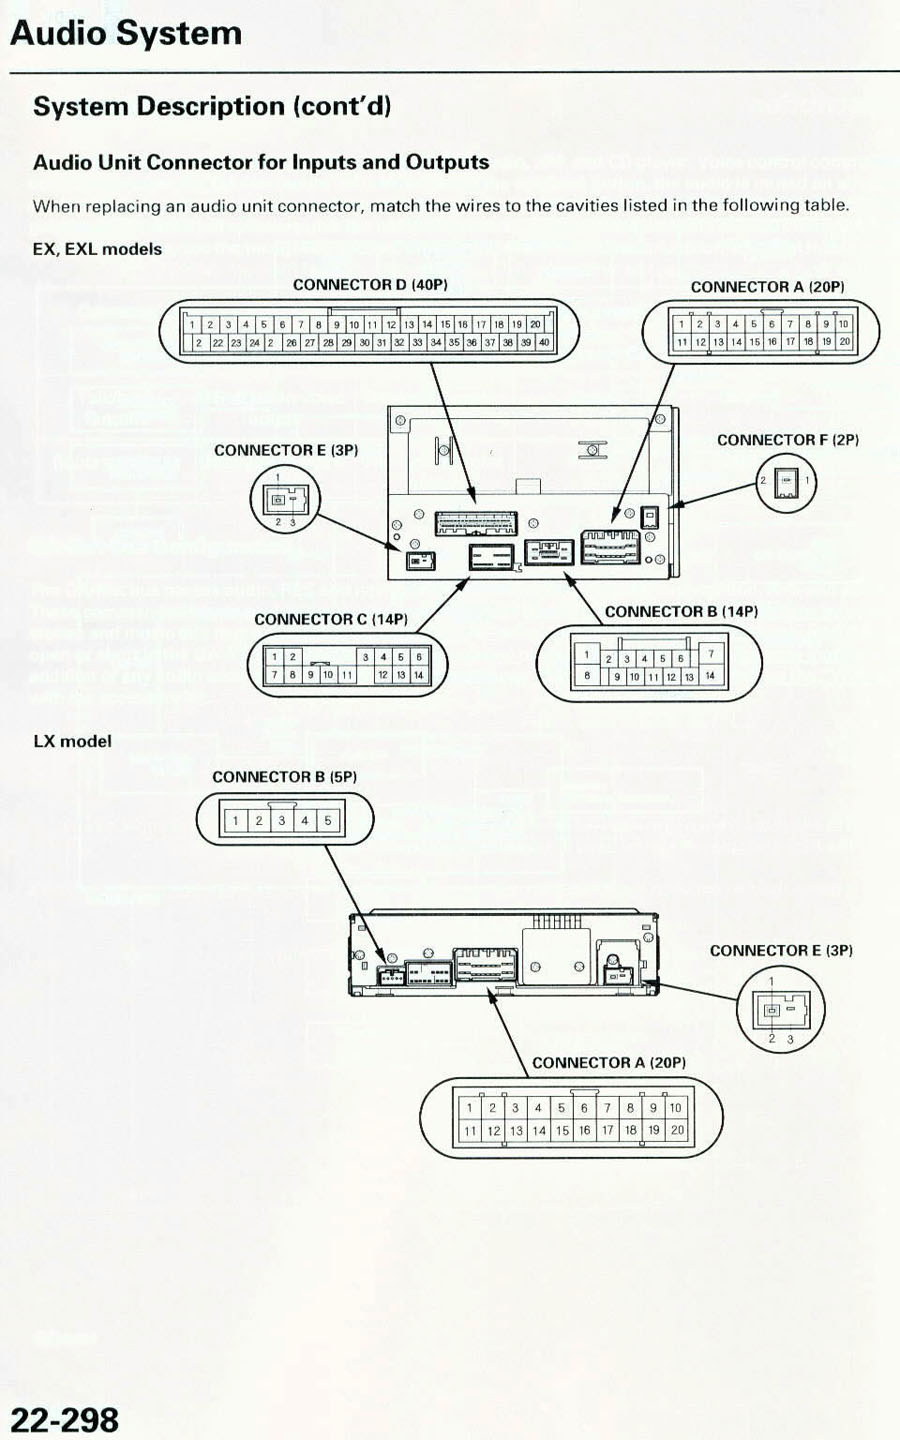 32969d1200063279 re factory subwoofer aftermarket hu audio_connector 2006 2006 honda pilot stereo wiring diagram 2006 wiring diagrams 2013 Honda CR-Z Interior at bakdesigns.co